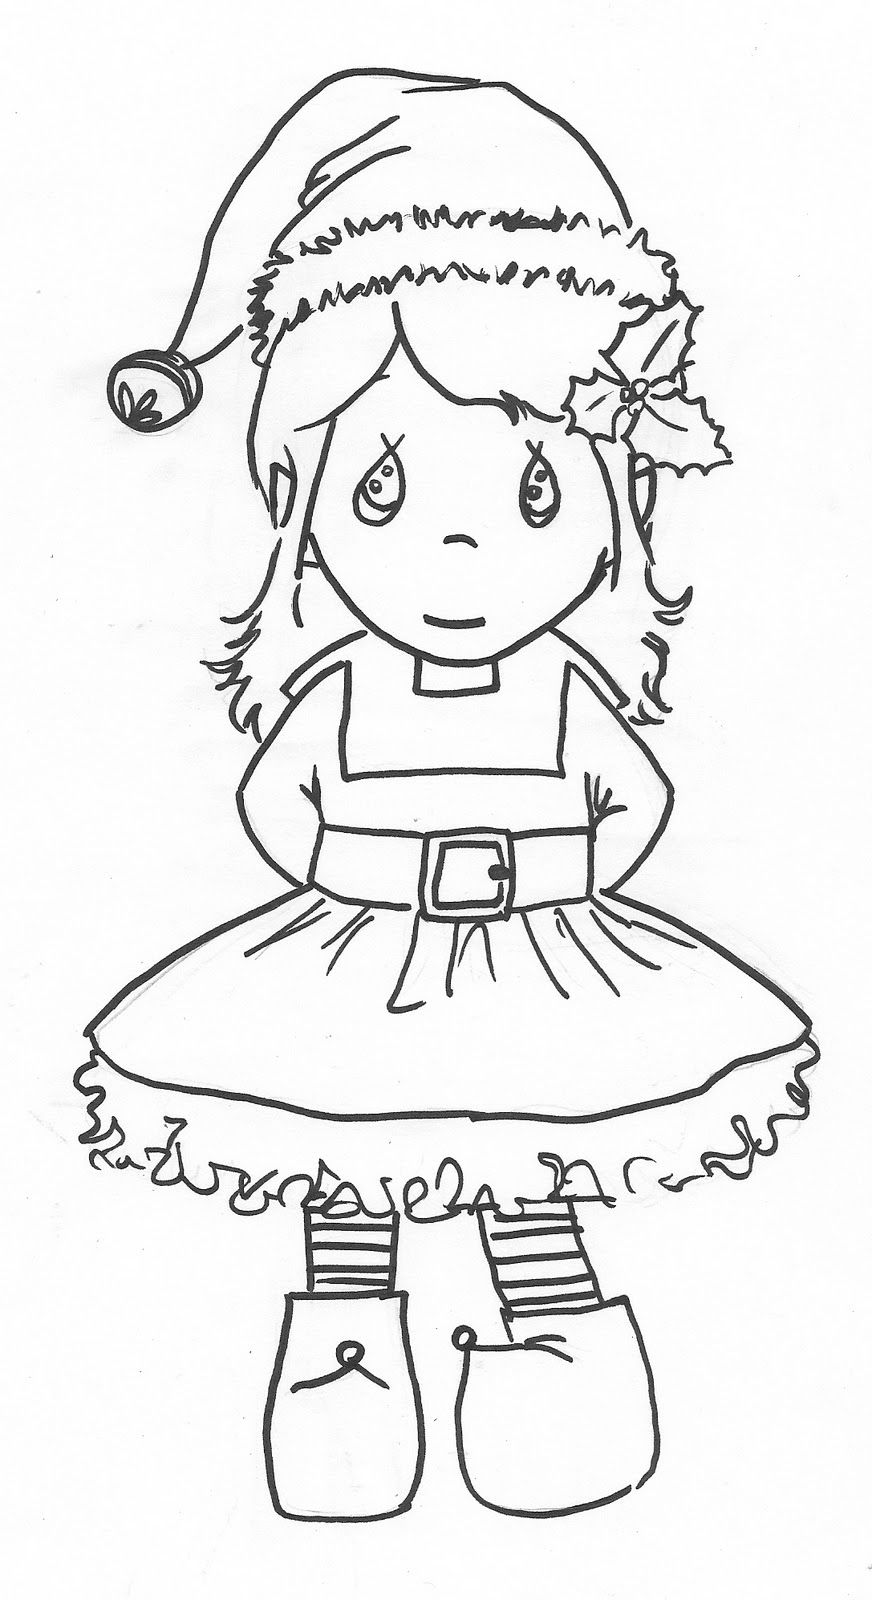 Precious Moments Girl Elf Coloring Page Cute Coloring Pages Disney Princess Coloring Pages Cartoon Coloring Pages